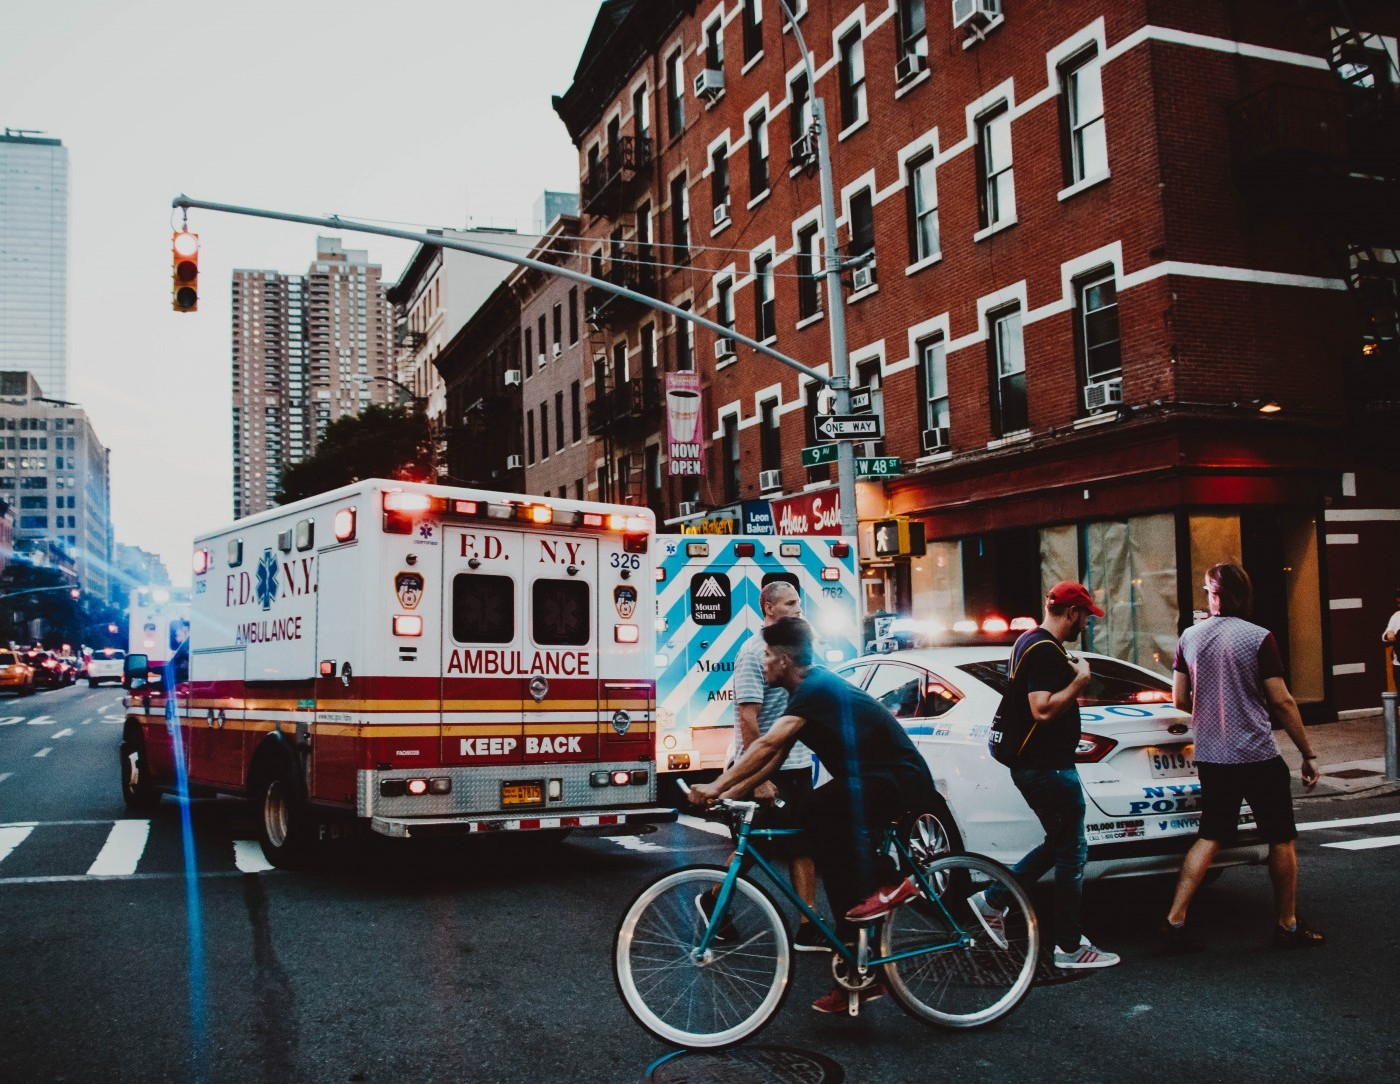 Ambulance_NYC.jpg